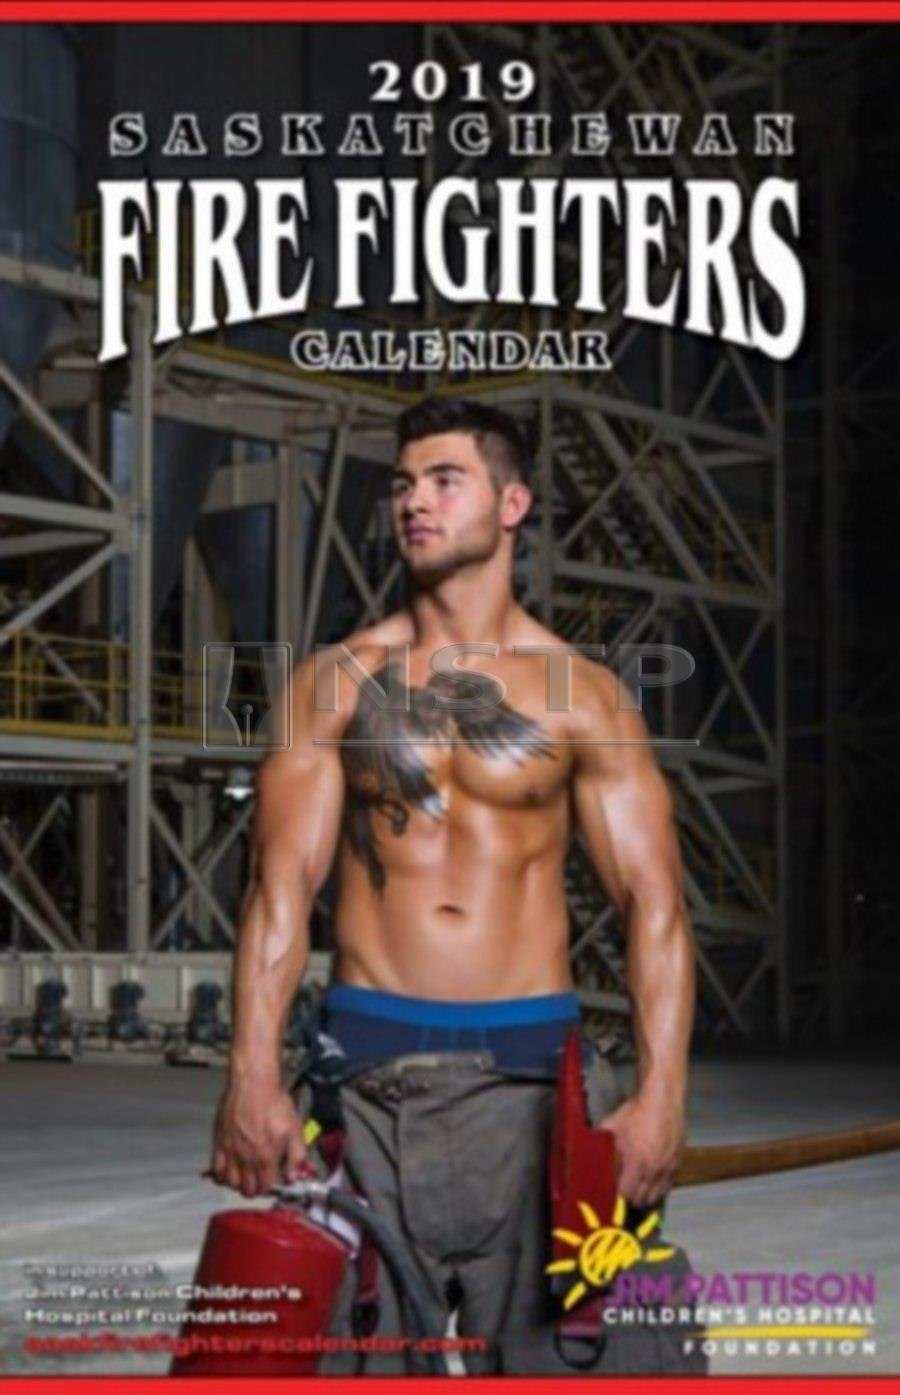 They Put Out Fires For A Living, But These Firemen Bring On The Heat X-Posed Calendar 2019